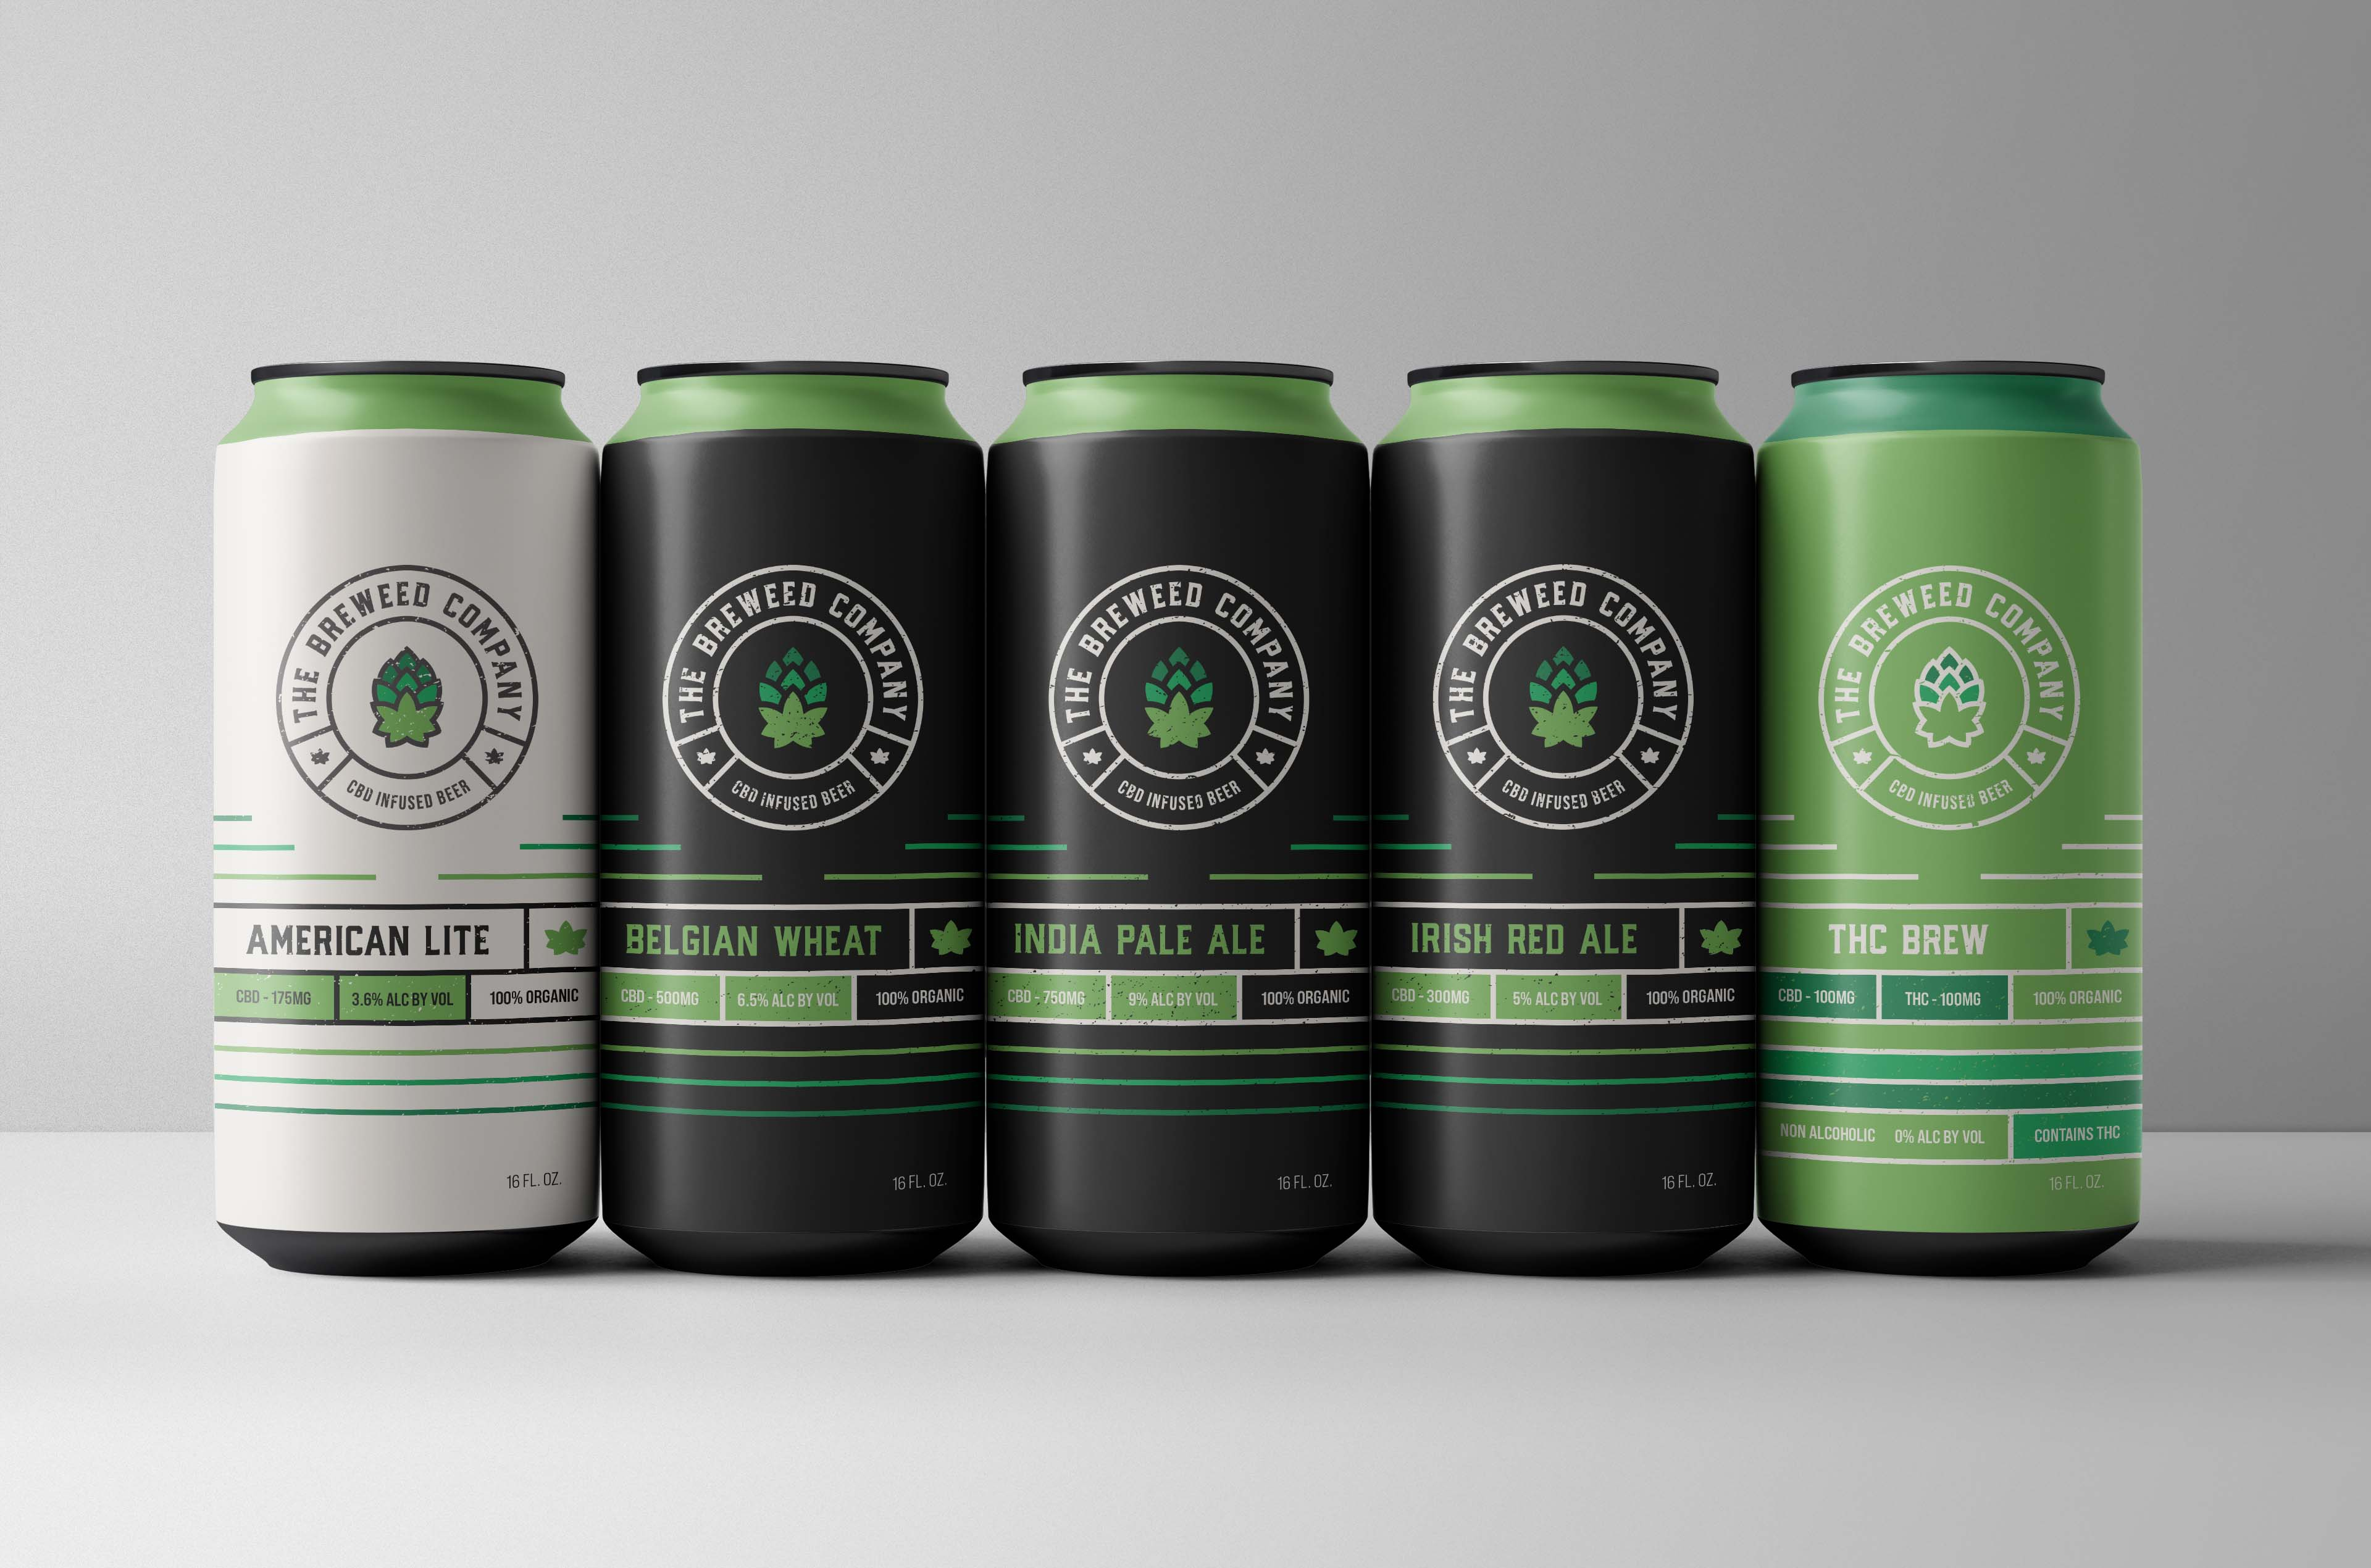 """Breweed Co. is a CBD infused beer brand. Breweed's owners, two surfers/skaters from the South Bay area, imagined a brand identity that represented surf and skate culture while staying true to a more traditional beer brand aesthetic. Being a craft brew, Breweed did not want to get lost in the """"goofy"""" visual aesthetic often found in this space."""